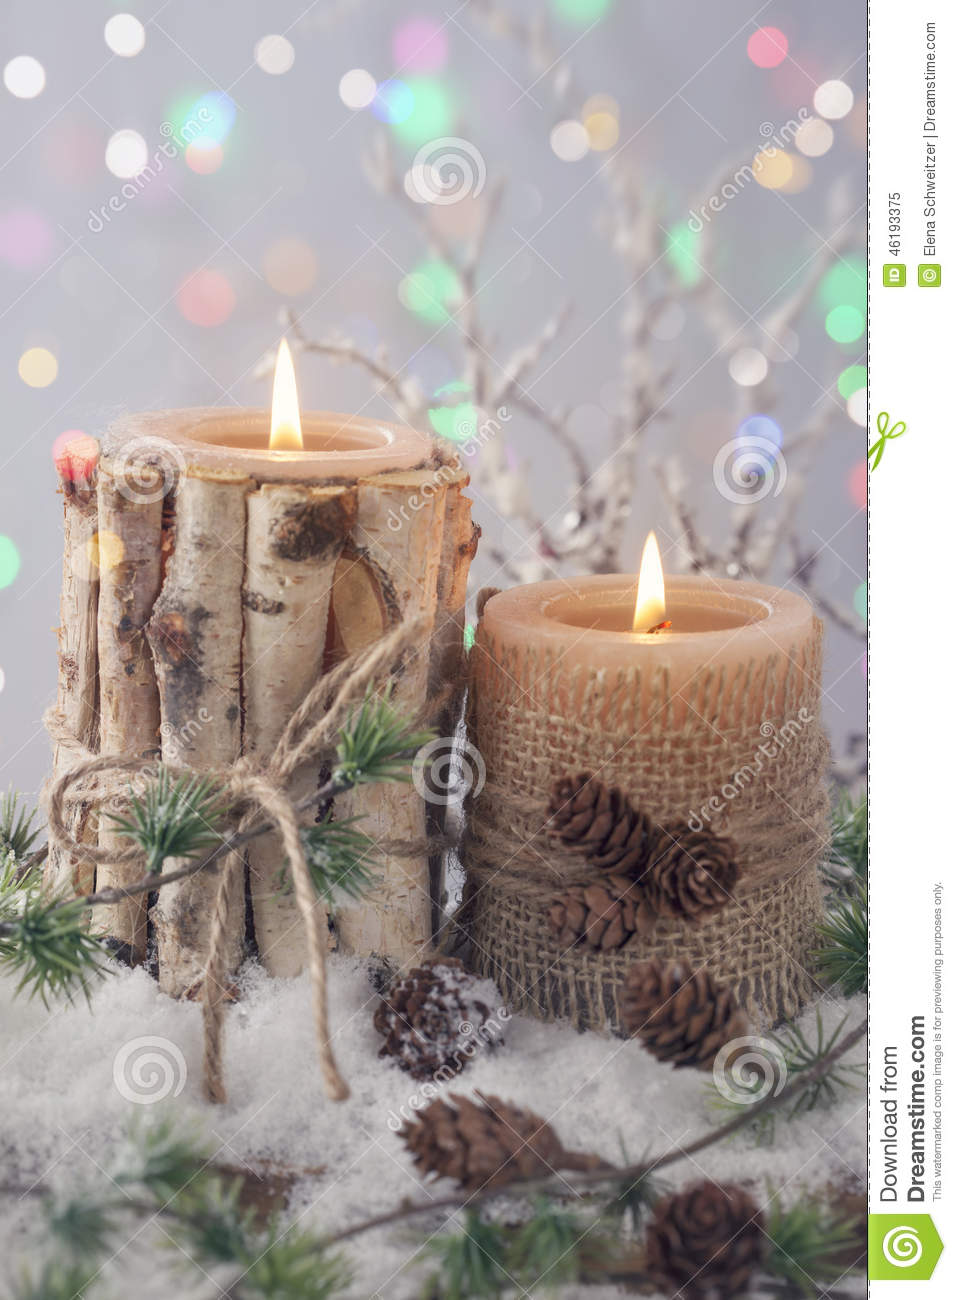 wedding ideas for a winter wedding winter candles stock image image of country 28110